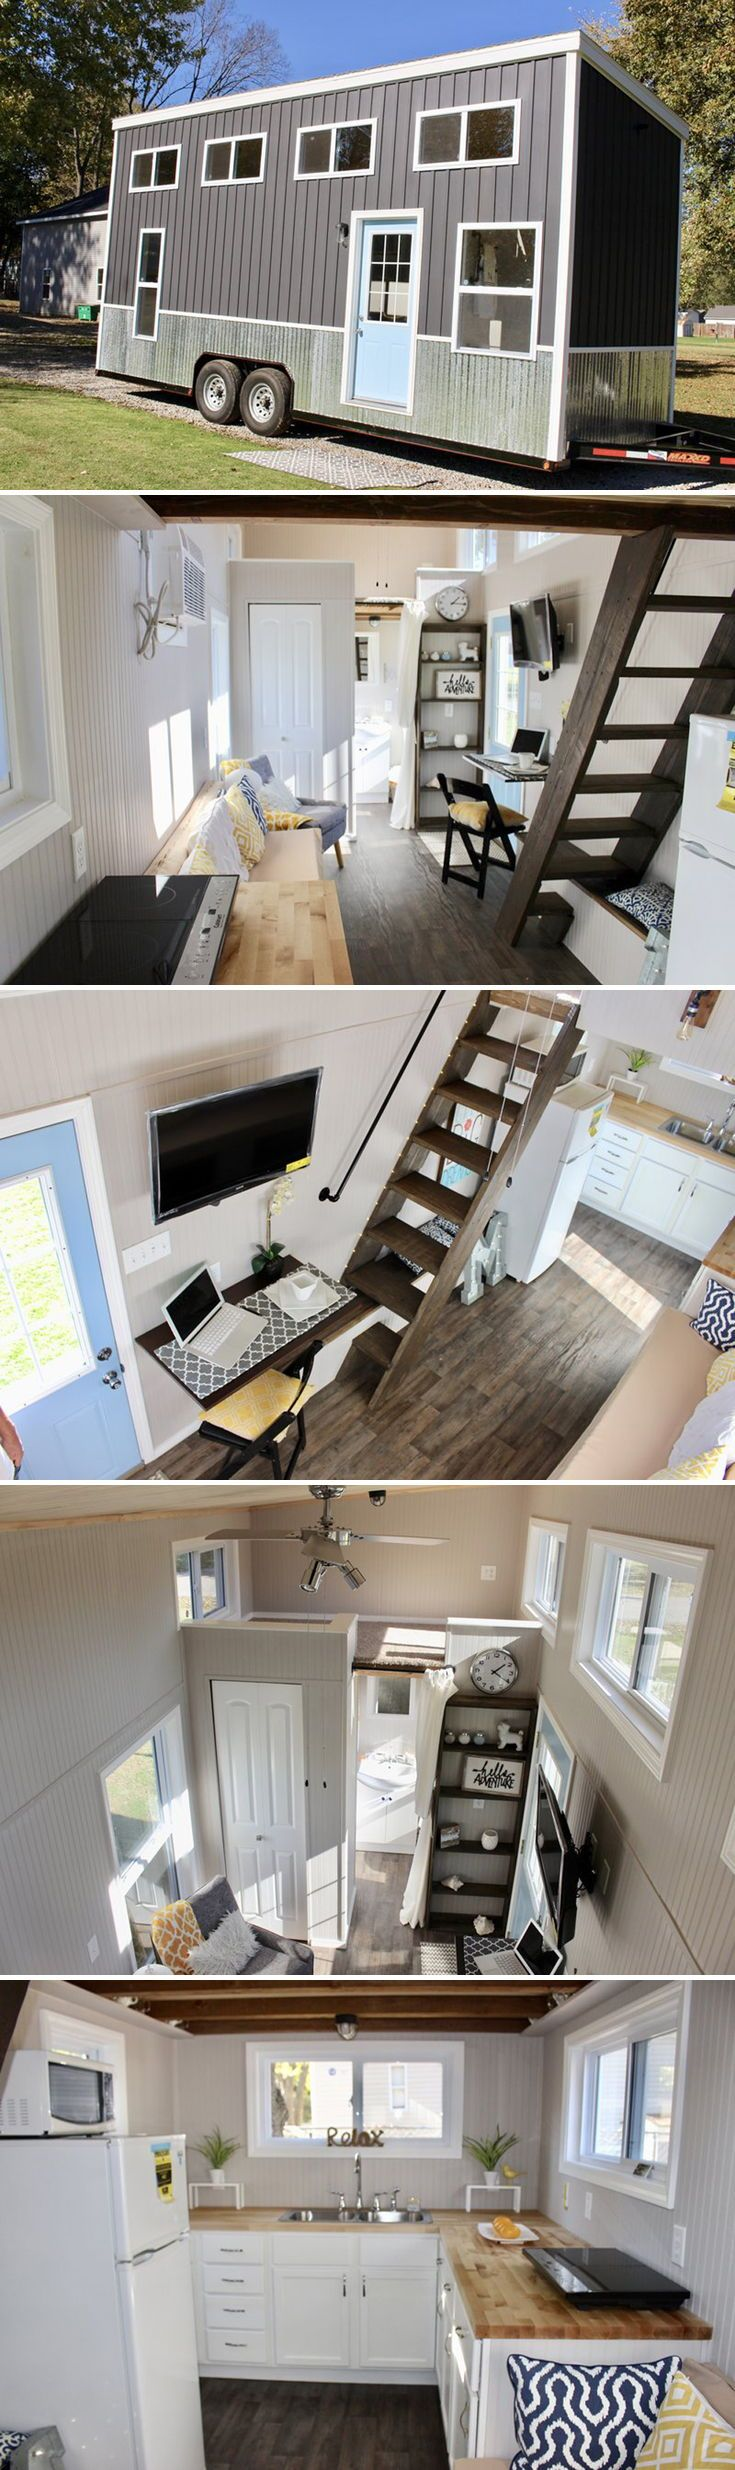 Relax Shack by Mini Mansions Tiny Living